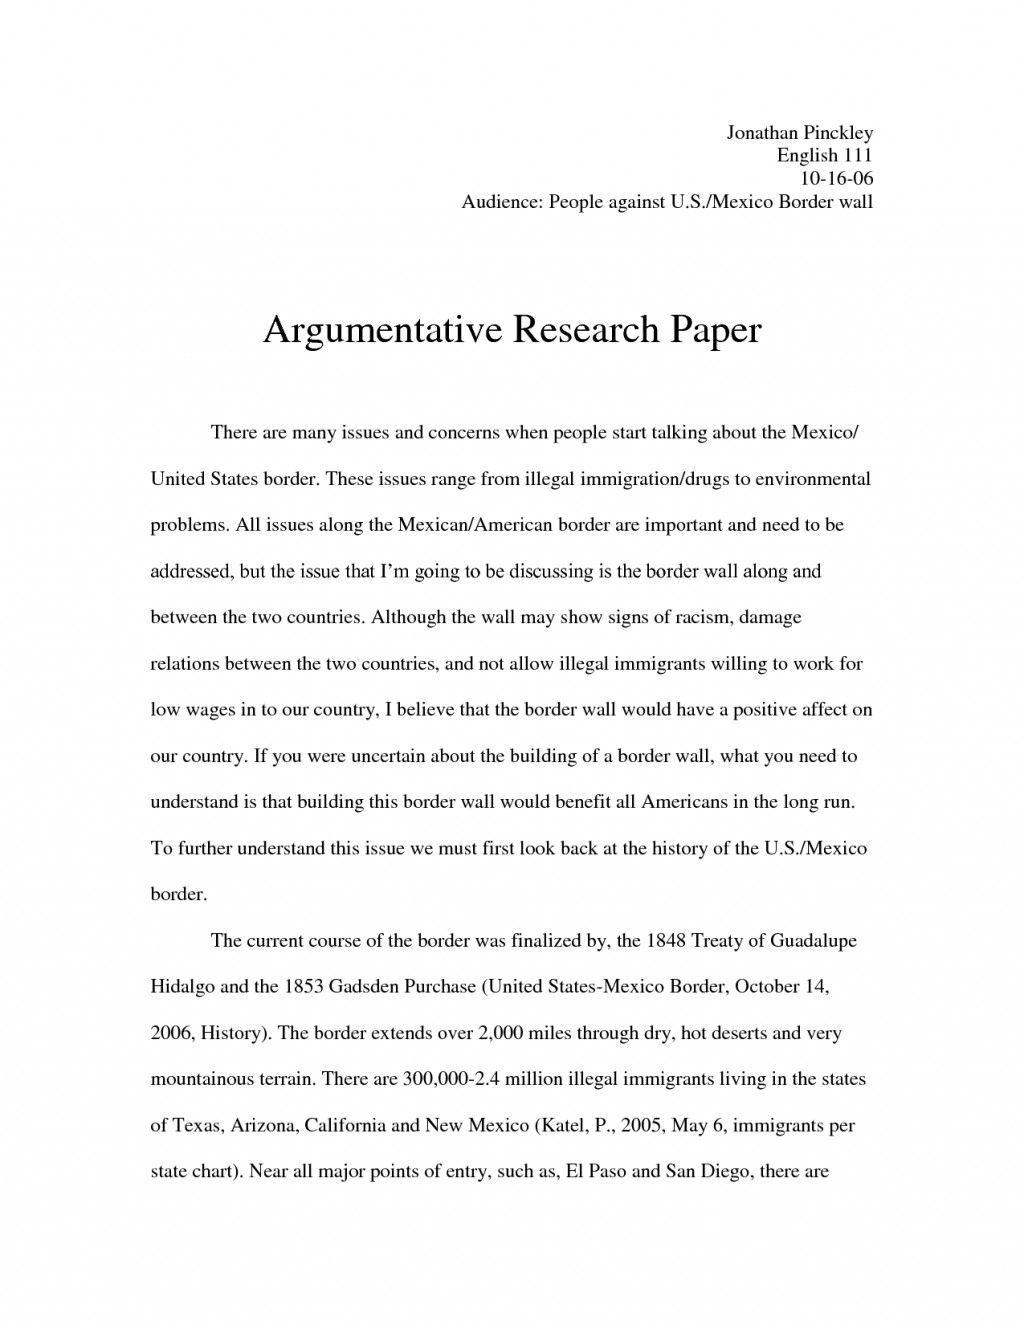 016 Research Paper Uncategorized Debate20y Argumentative Thesis High School Topics Sentence Starters Outline Worksheet Structure20 For Striking An Easy Essay Interesting Large